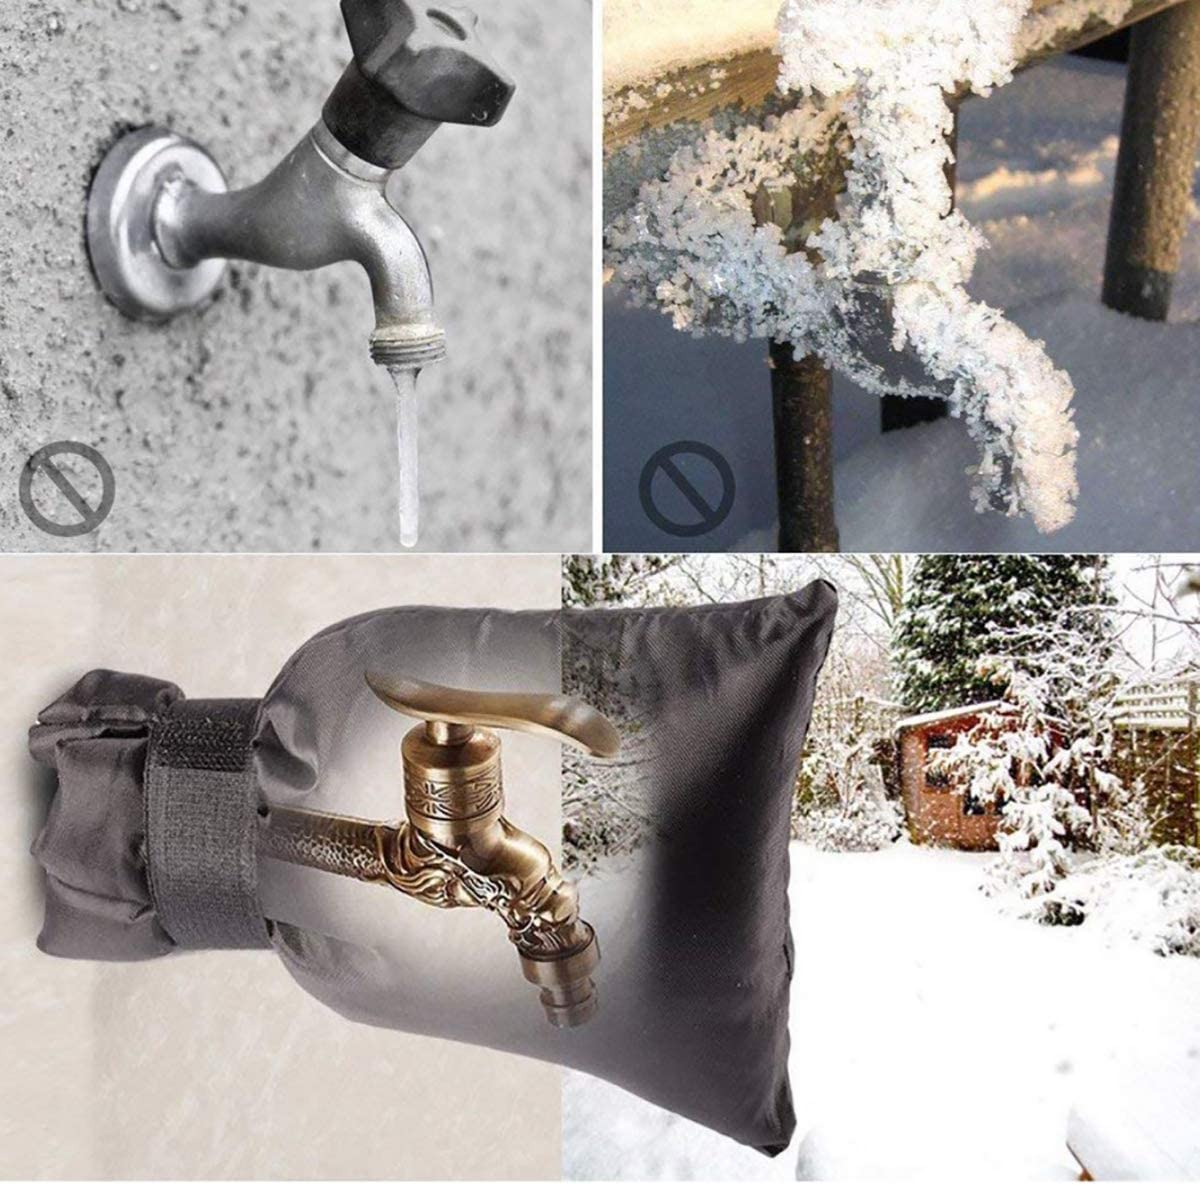 Reusable Waterproof Insulated Spigot Cover(Thicker) yuantongshun Outdoor Faucet Covers Waterproof for Winter Outside Garden Faucet Socks for Freeze Protection